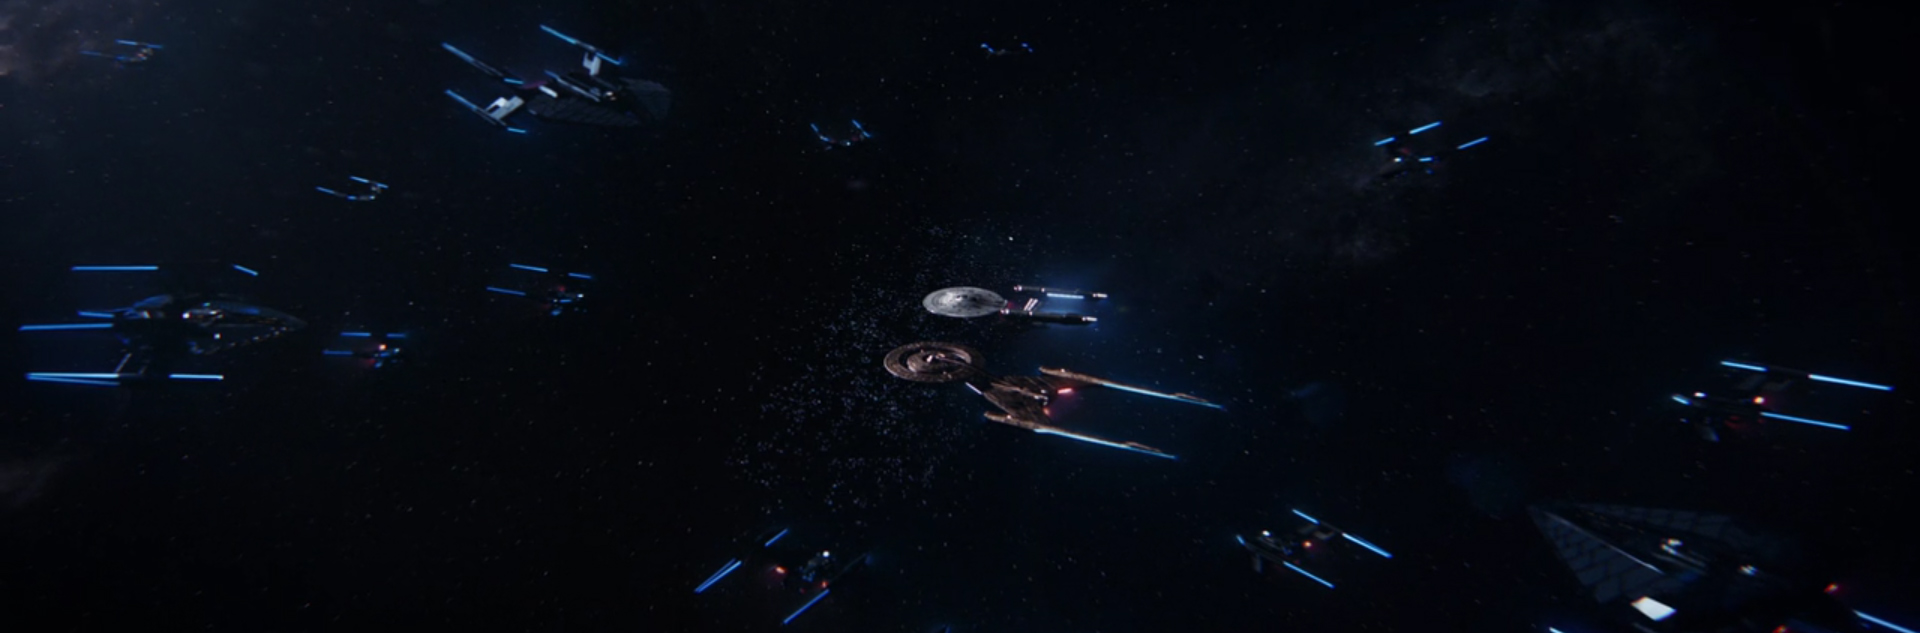 Star Trek Discovery: Such Sweet Sorrow Part 2. Image Credit: CBS Studios.